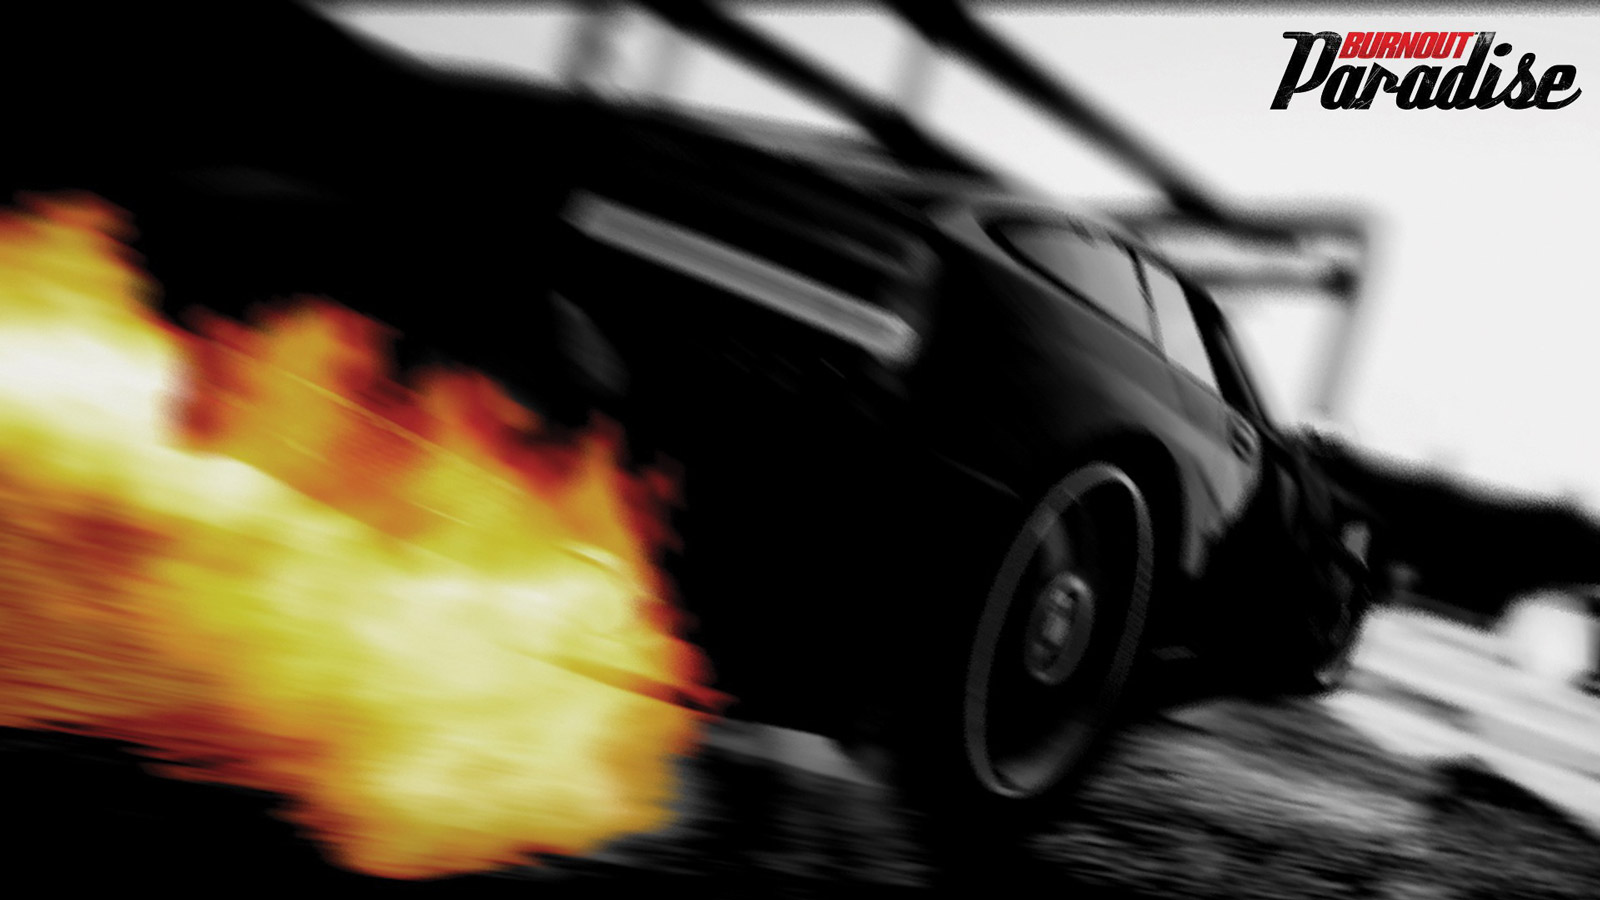 Burnout Paradise Wallpaper in 1600x900